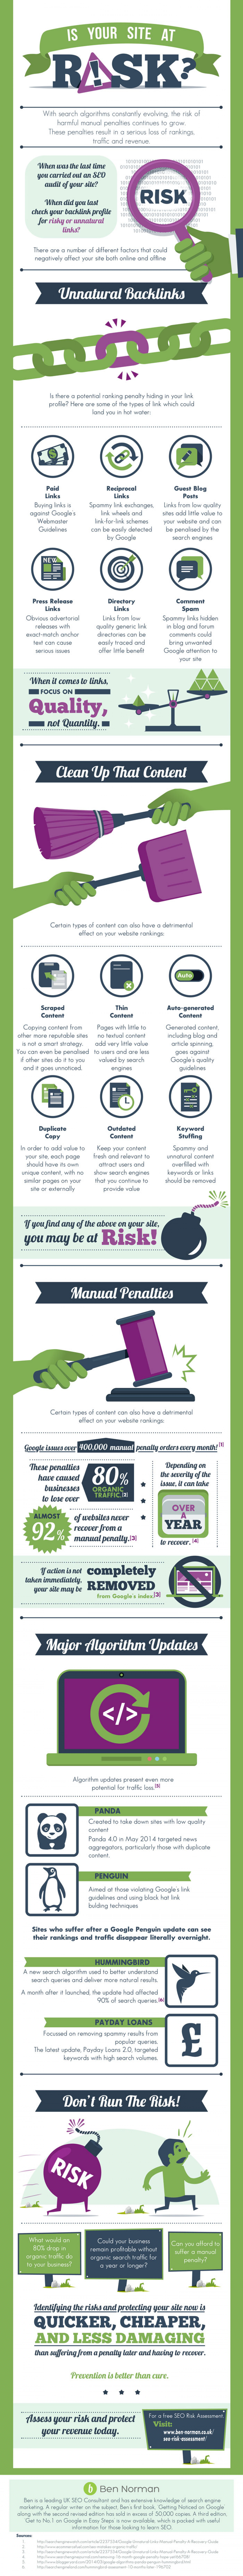 Is Your Site At Risk?  Infographic